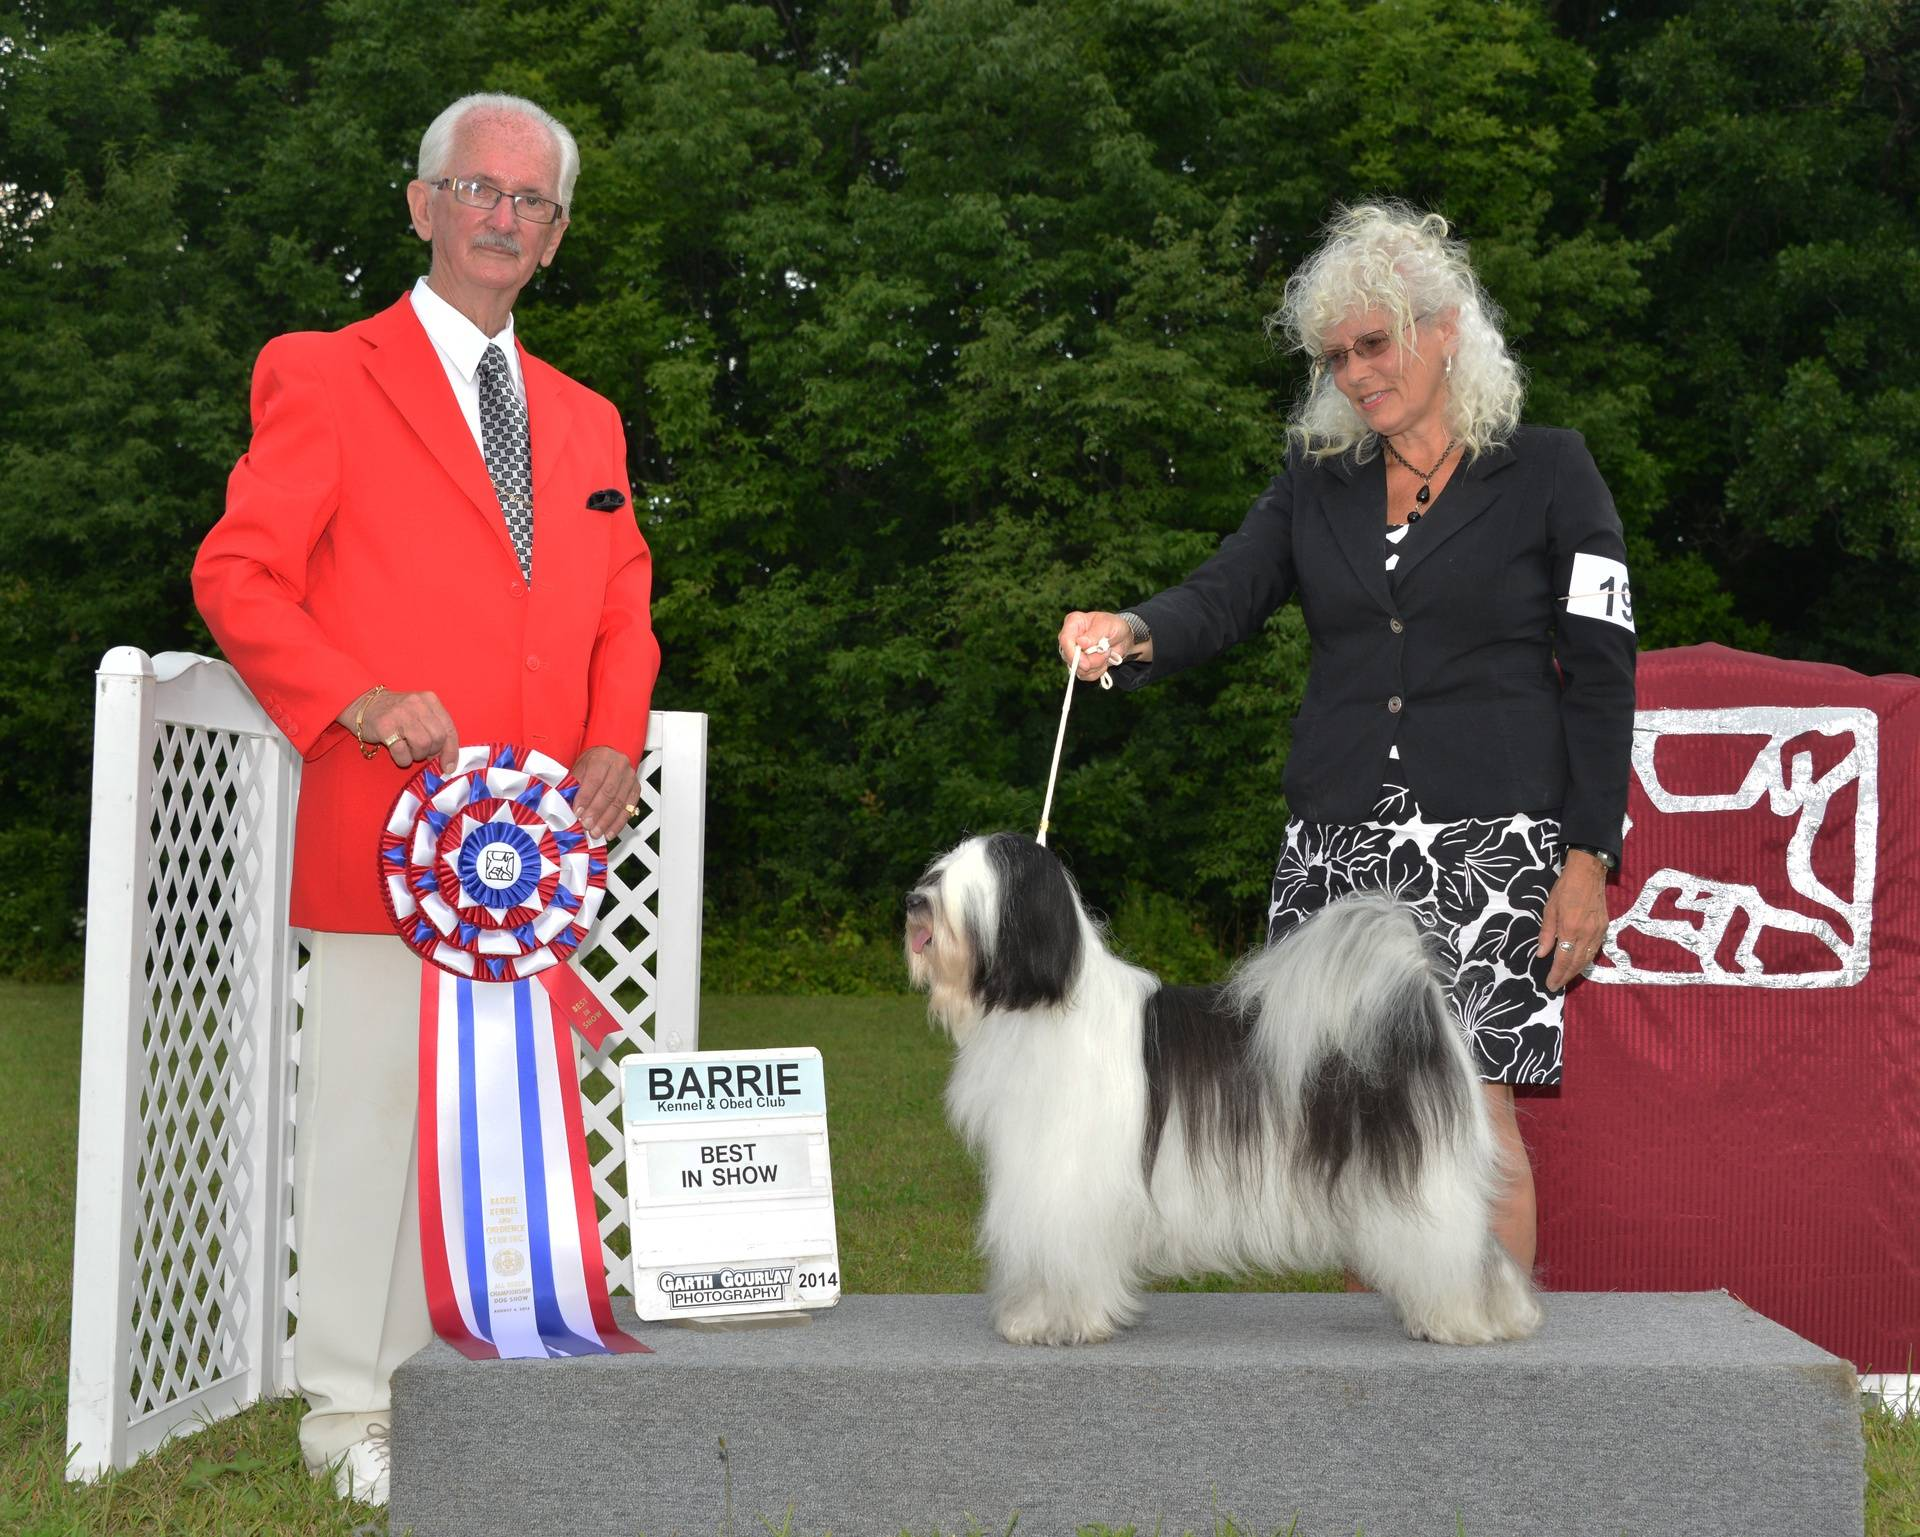 Monday, August 4 - Best in Show